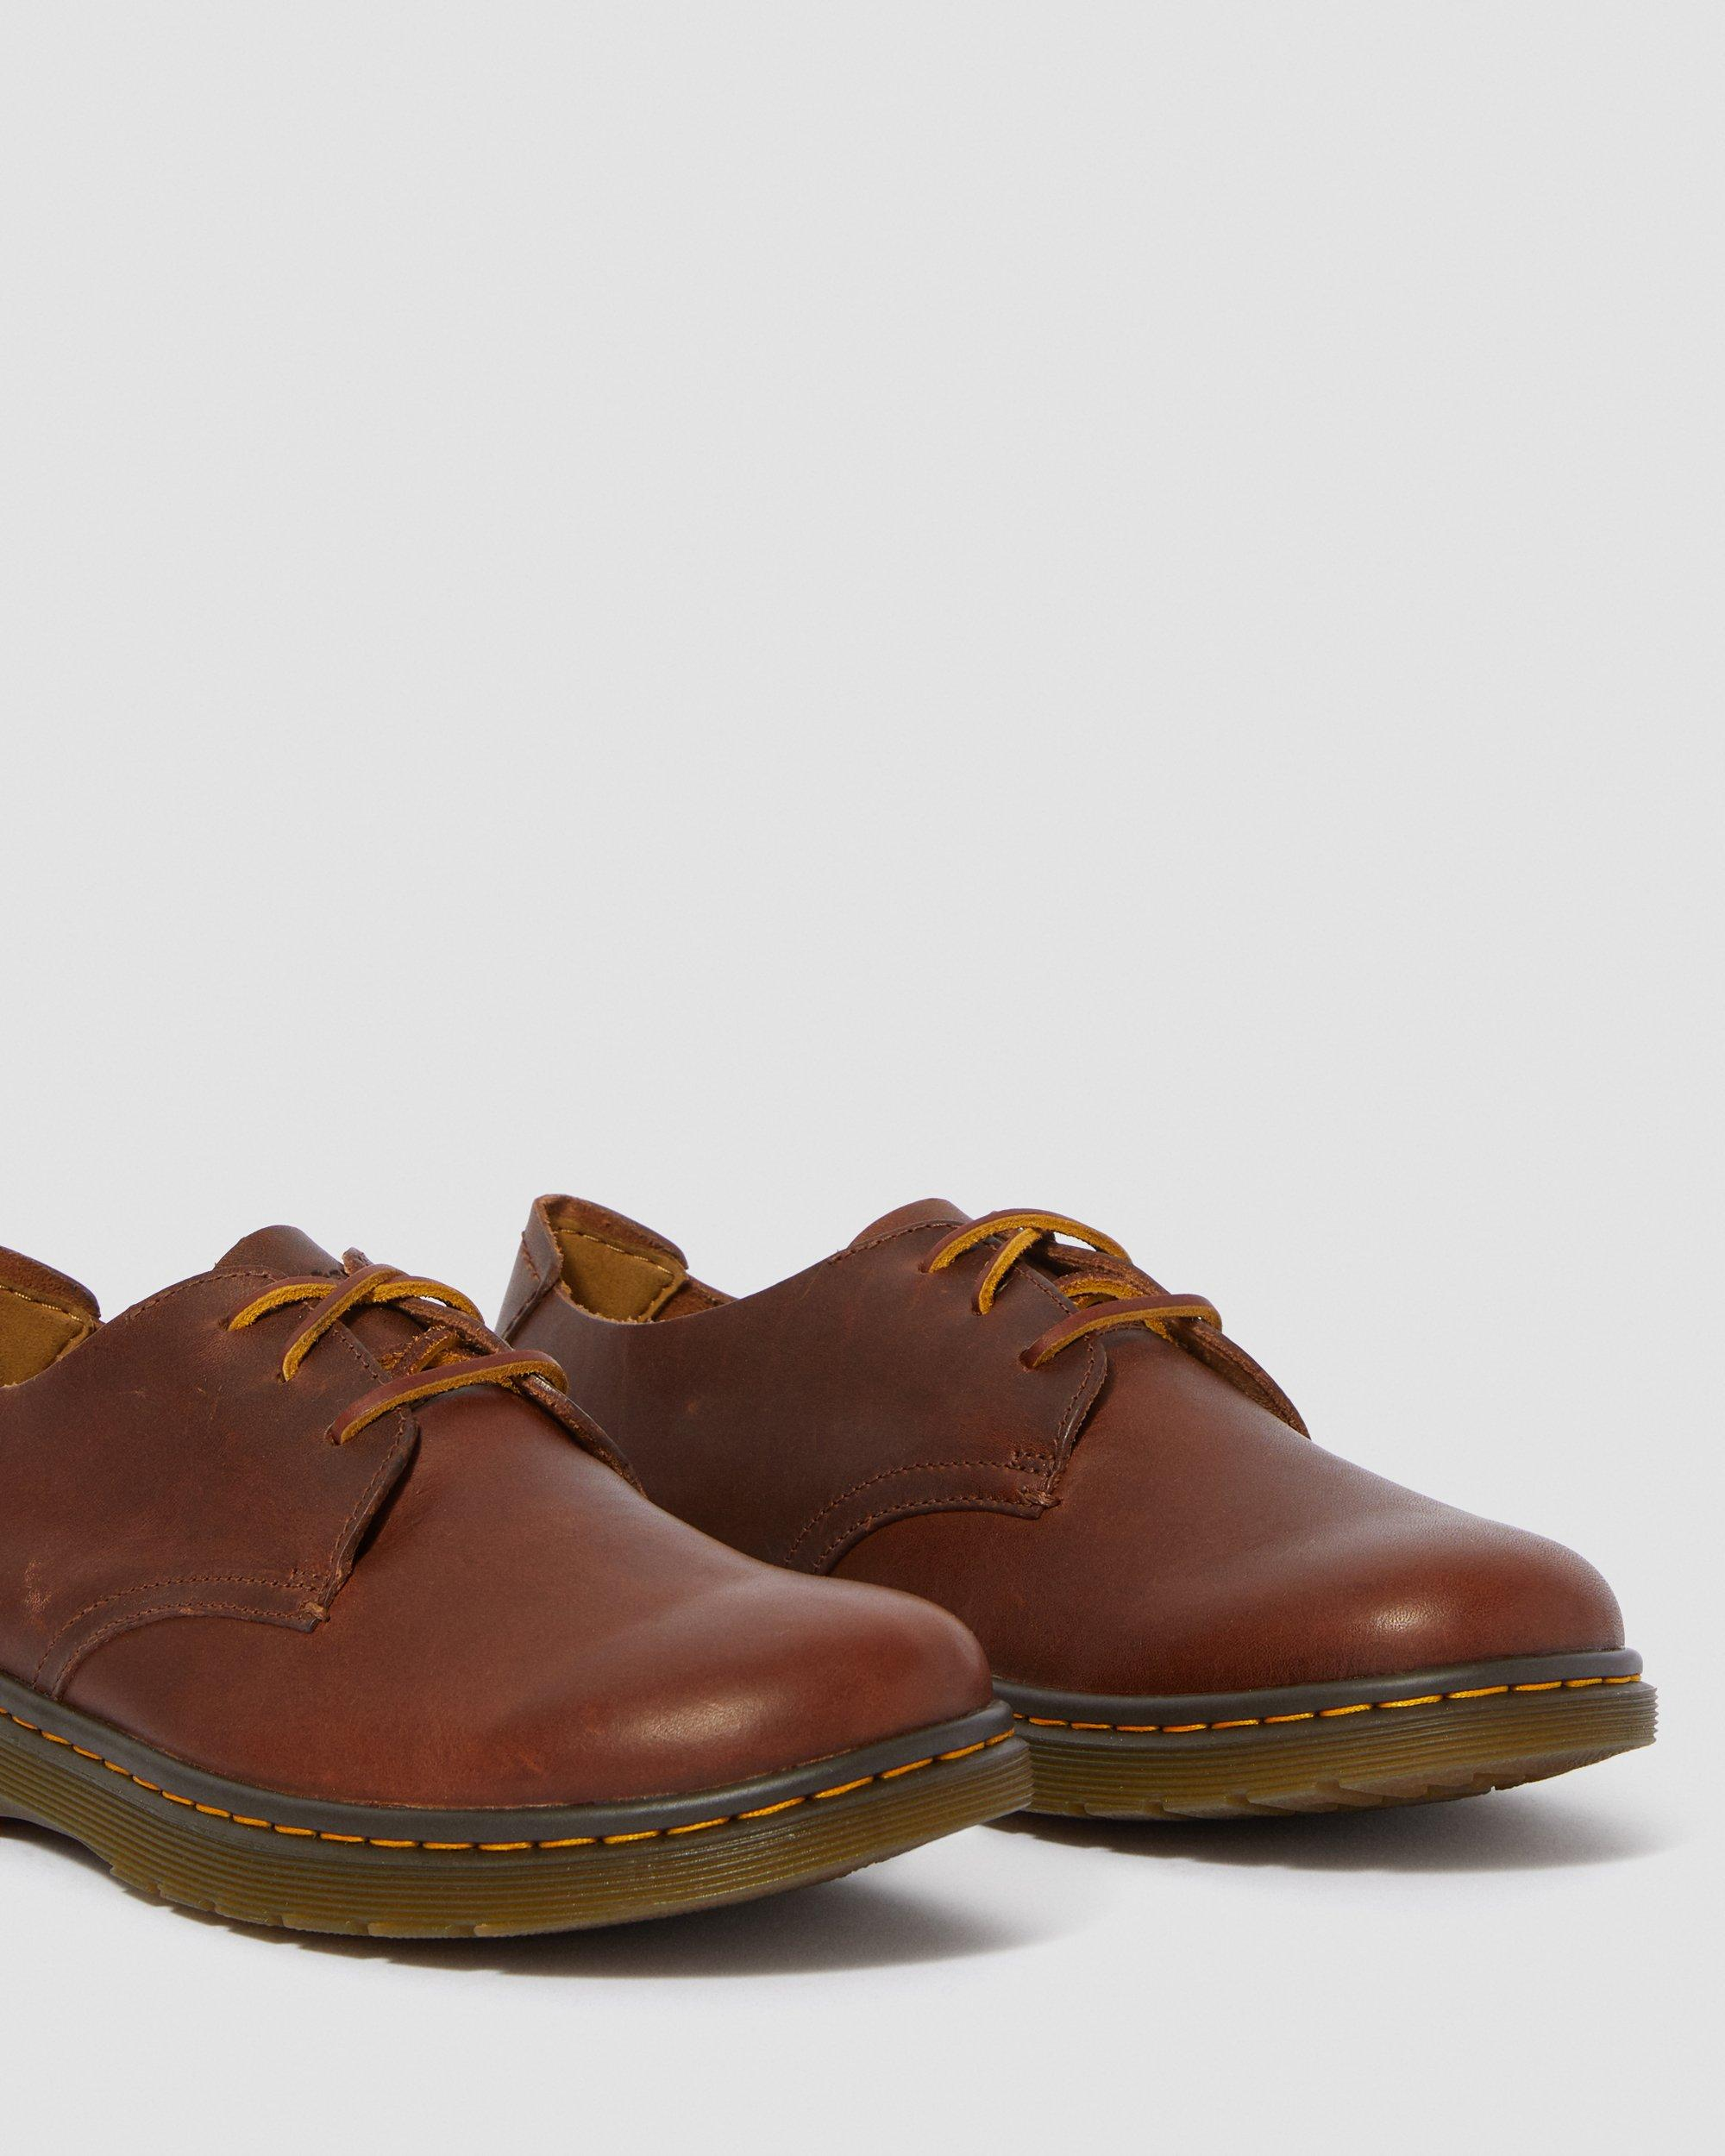 ELSFIELD LEATHER LACE UP 3-EYE SHOES